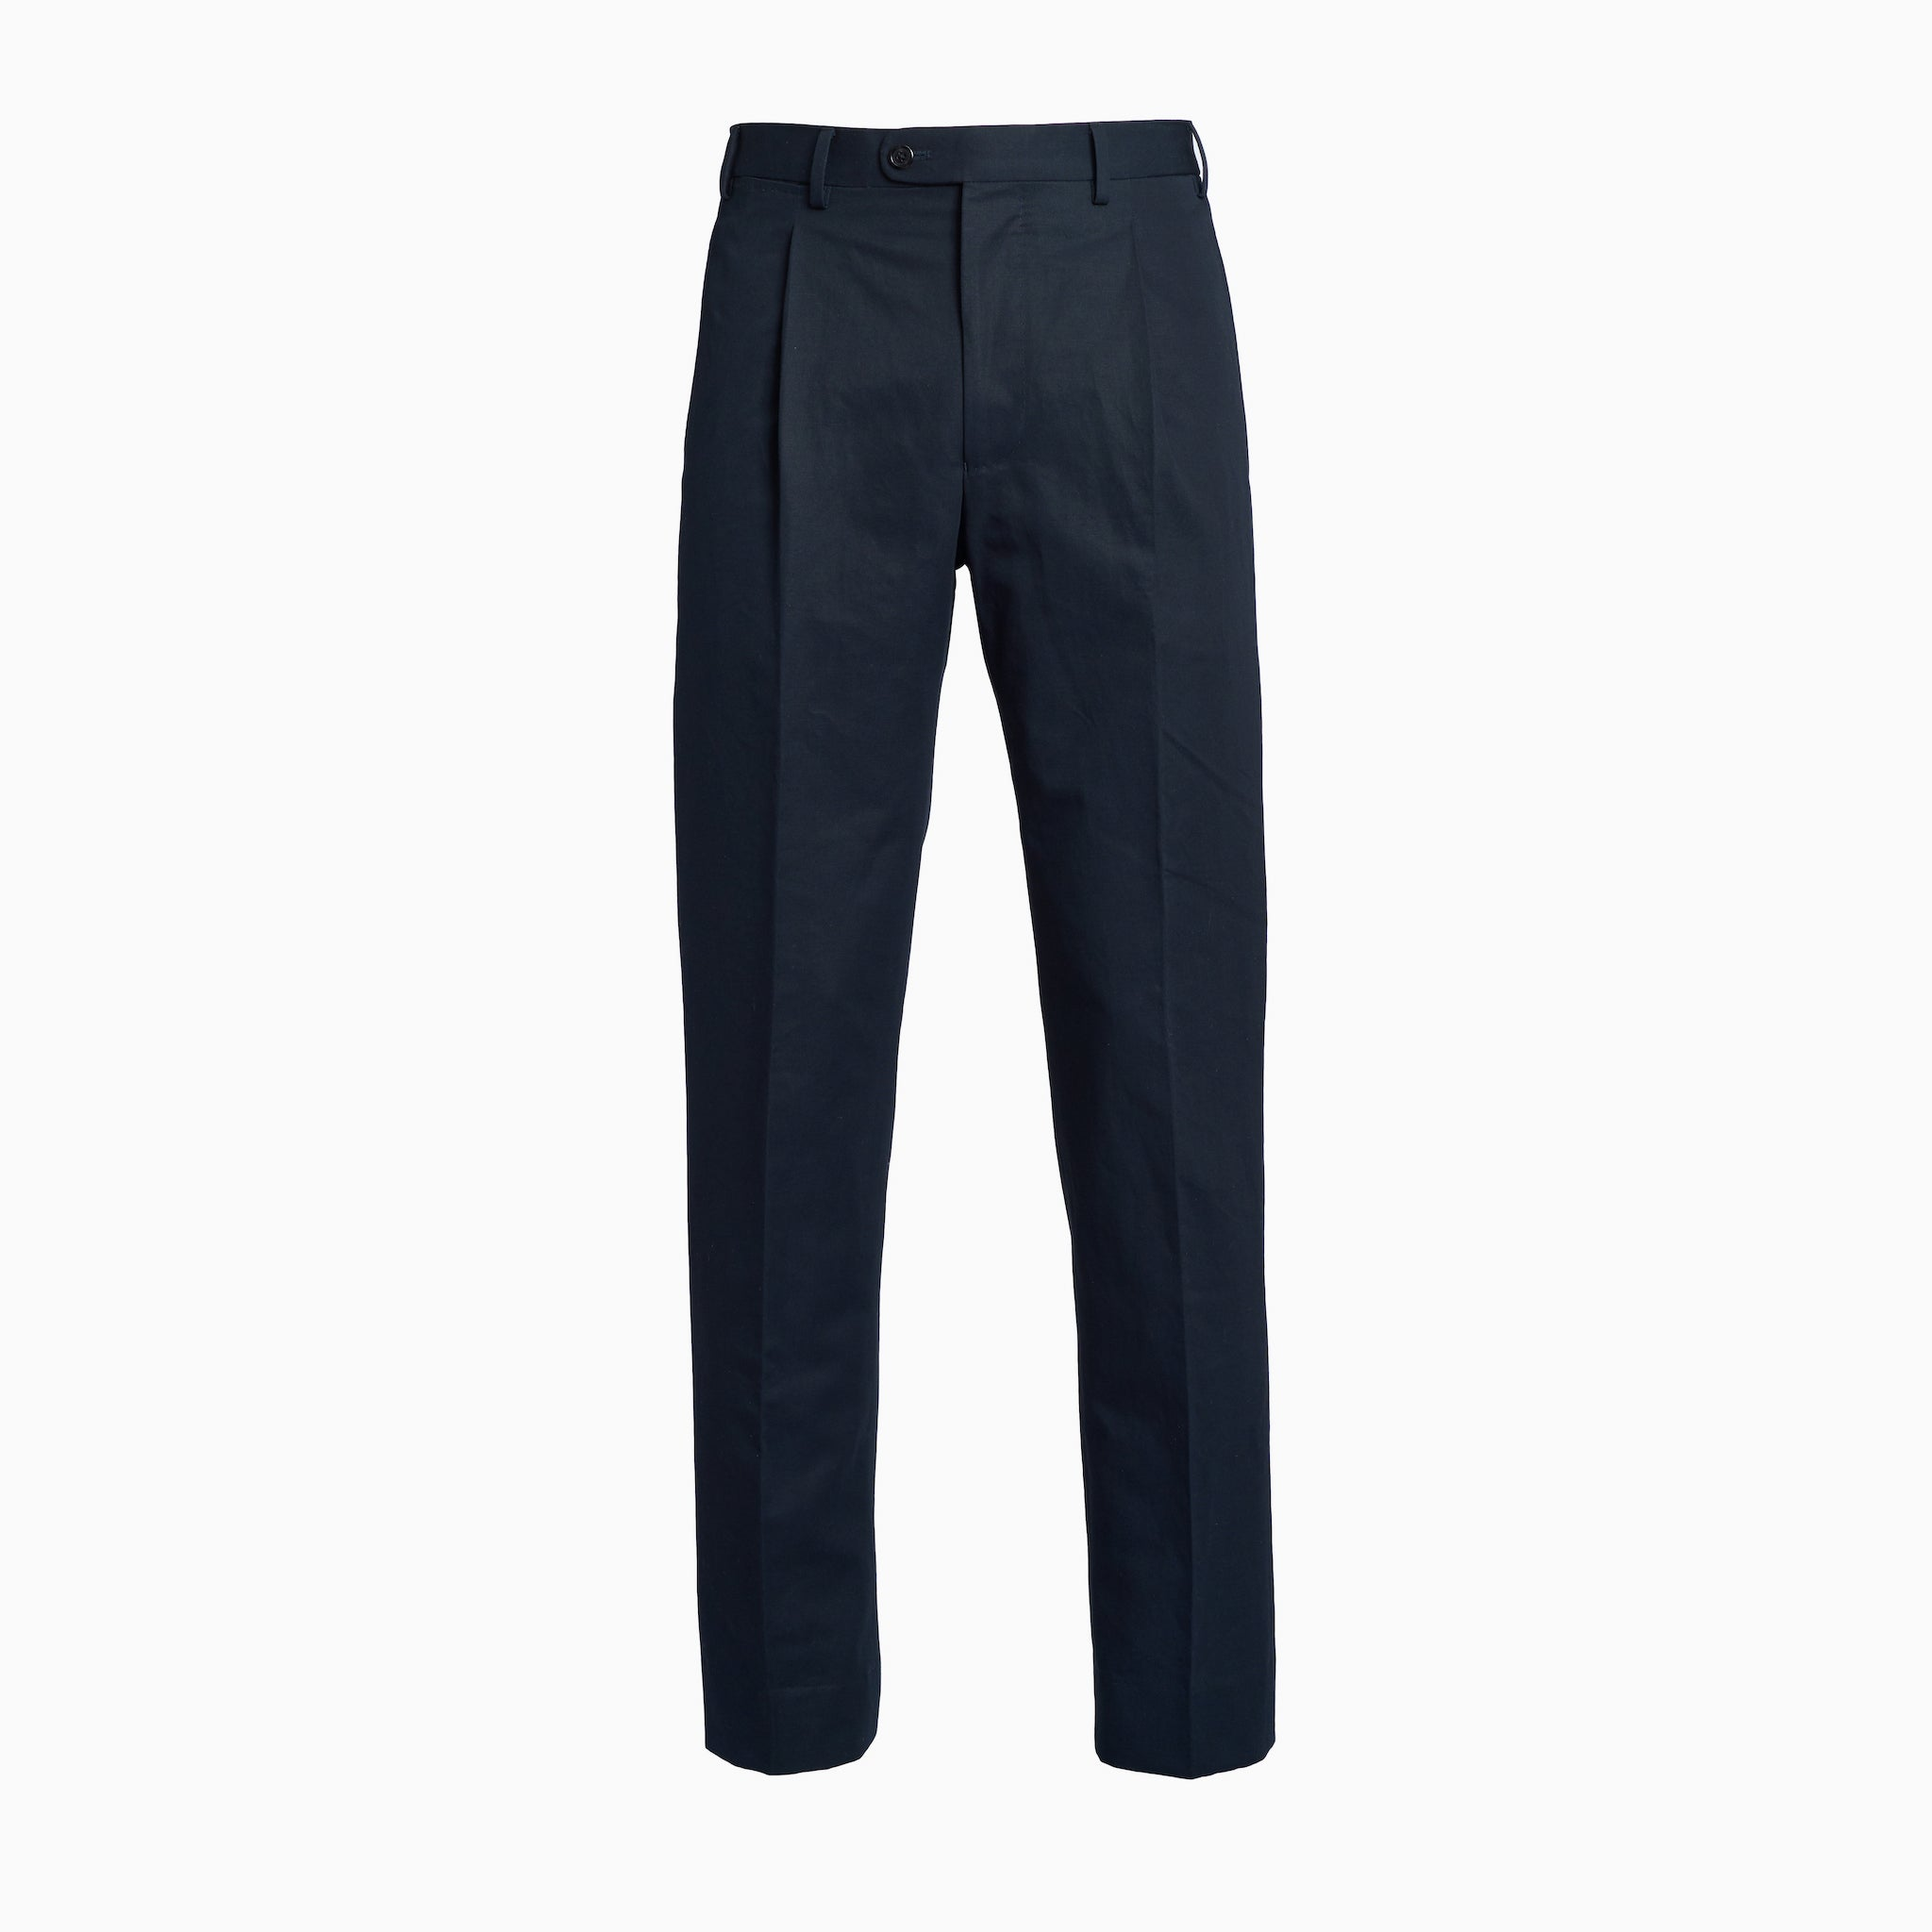 Navy Cotton Linen Trousers w/ Single Pleat